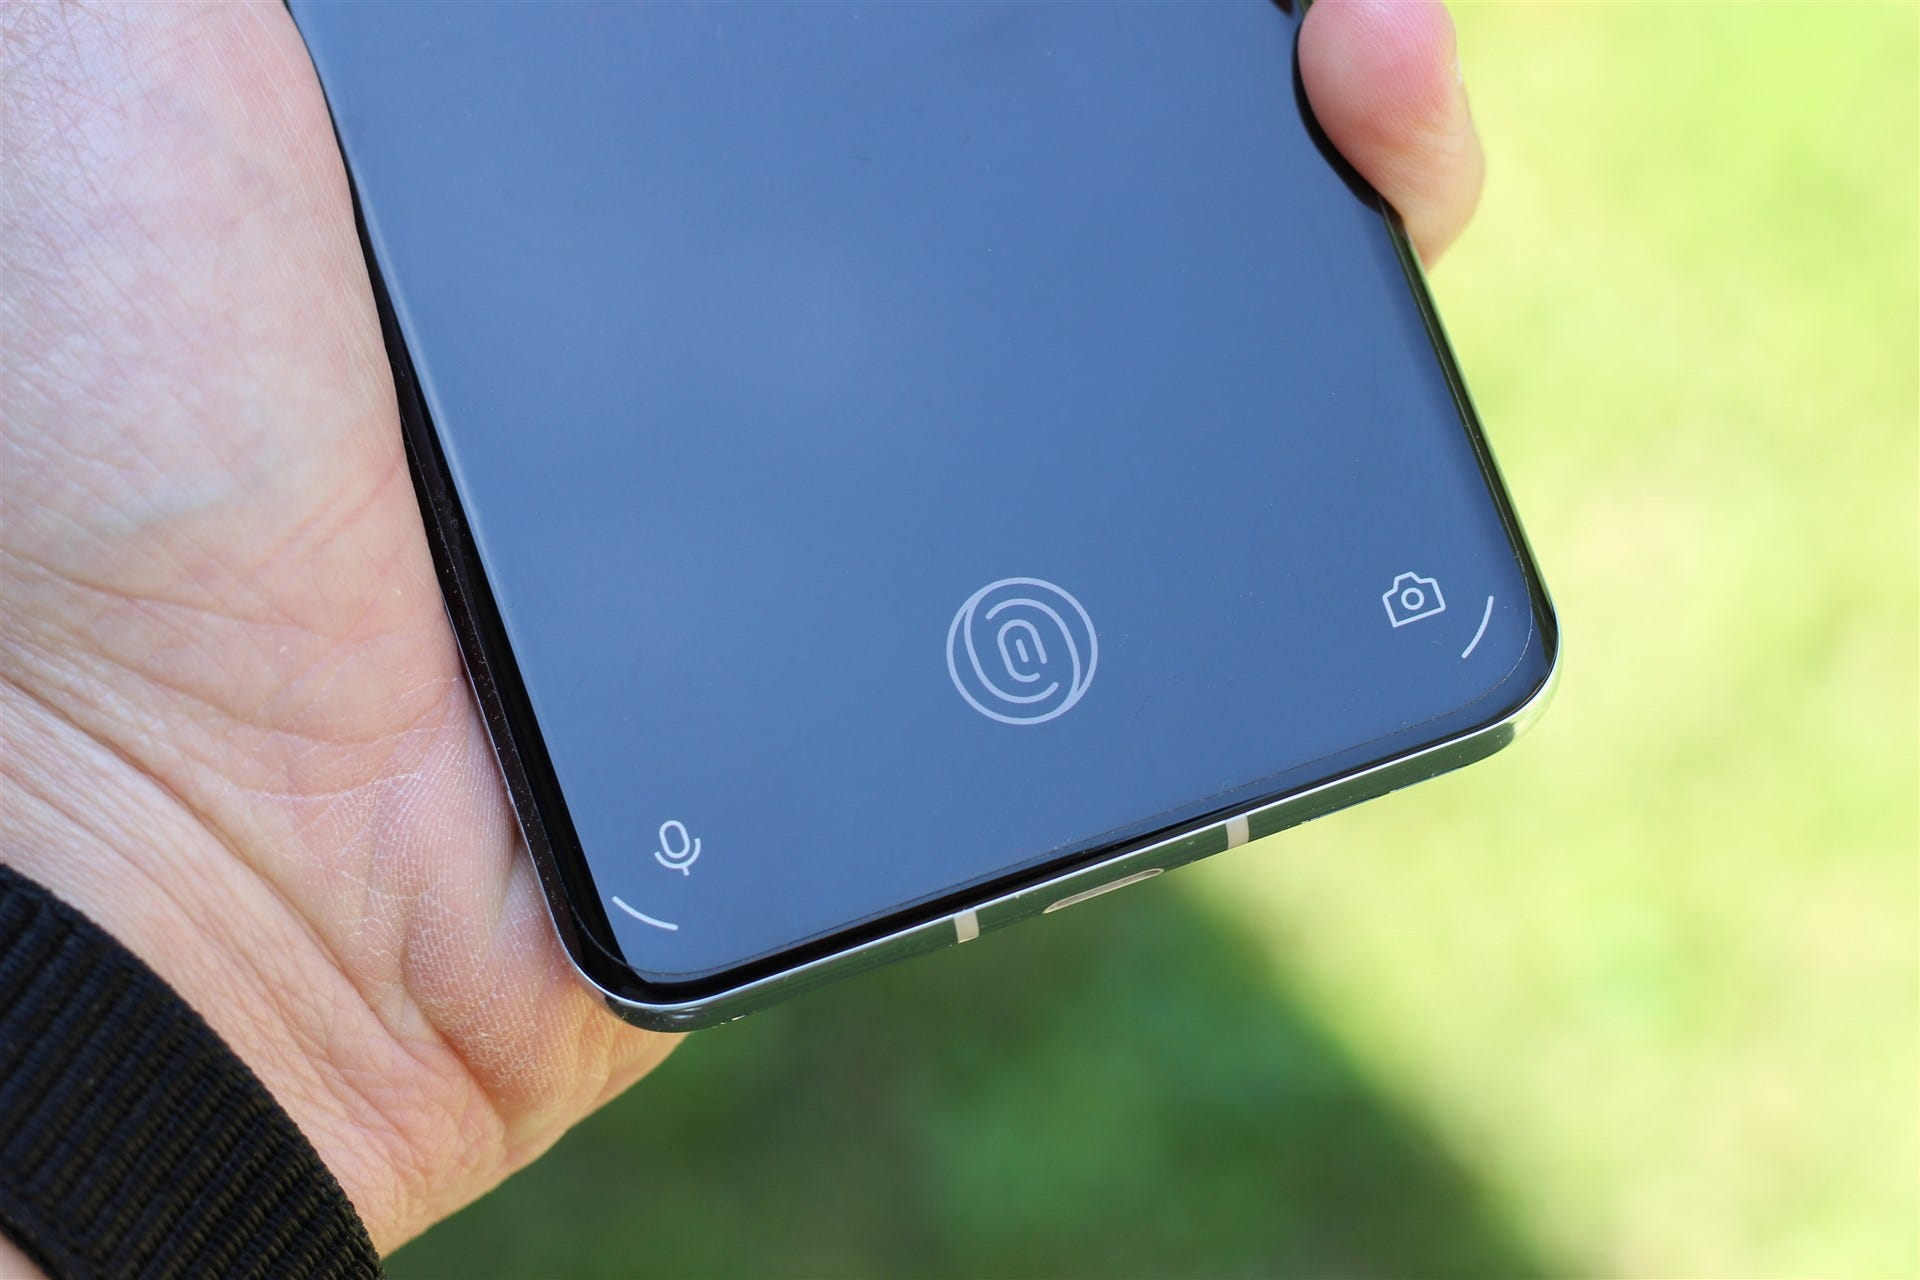 The 9 Pro's in-display fingerprint sensor